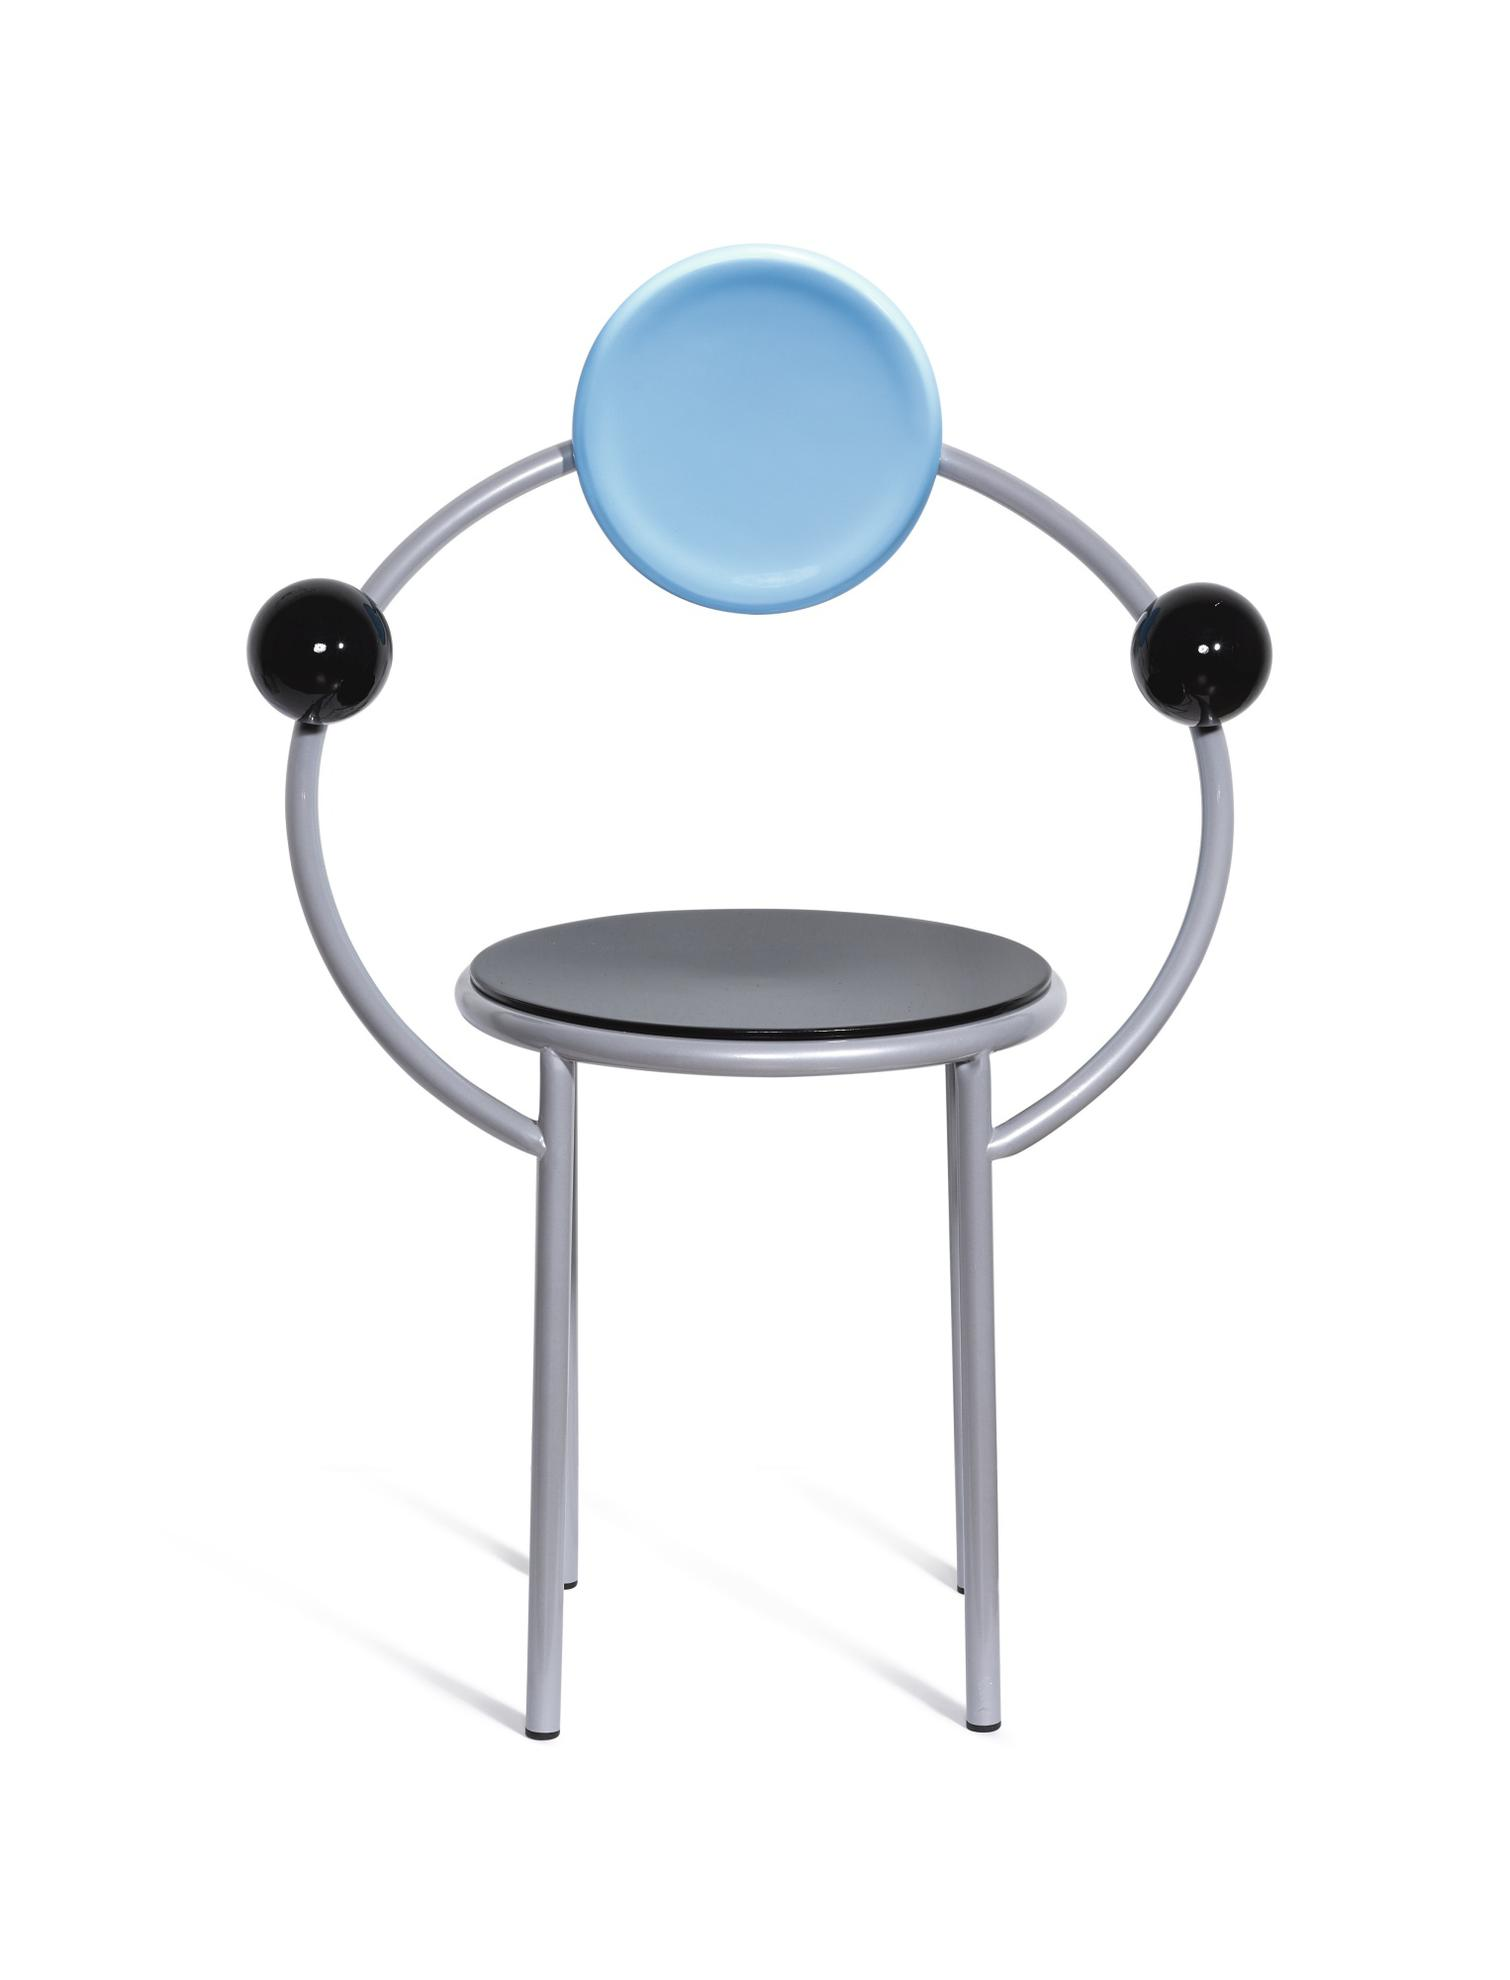 Michele De Lucchi - First Chair-1983